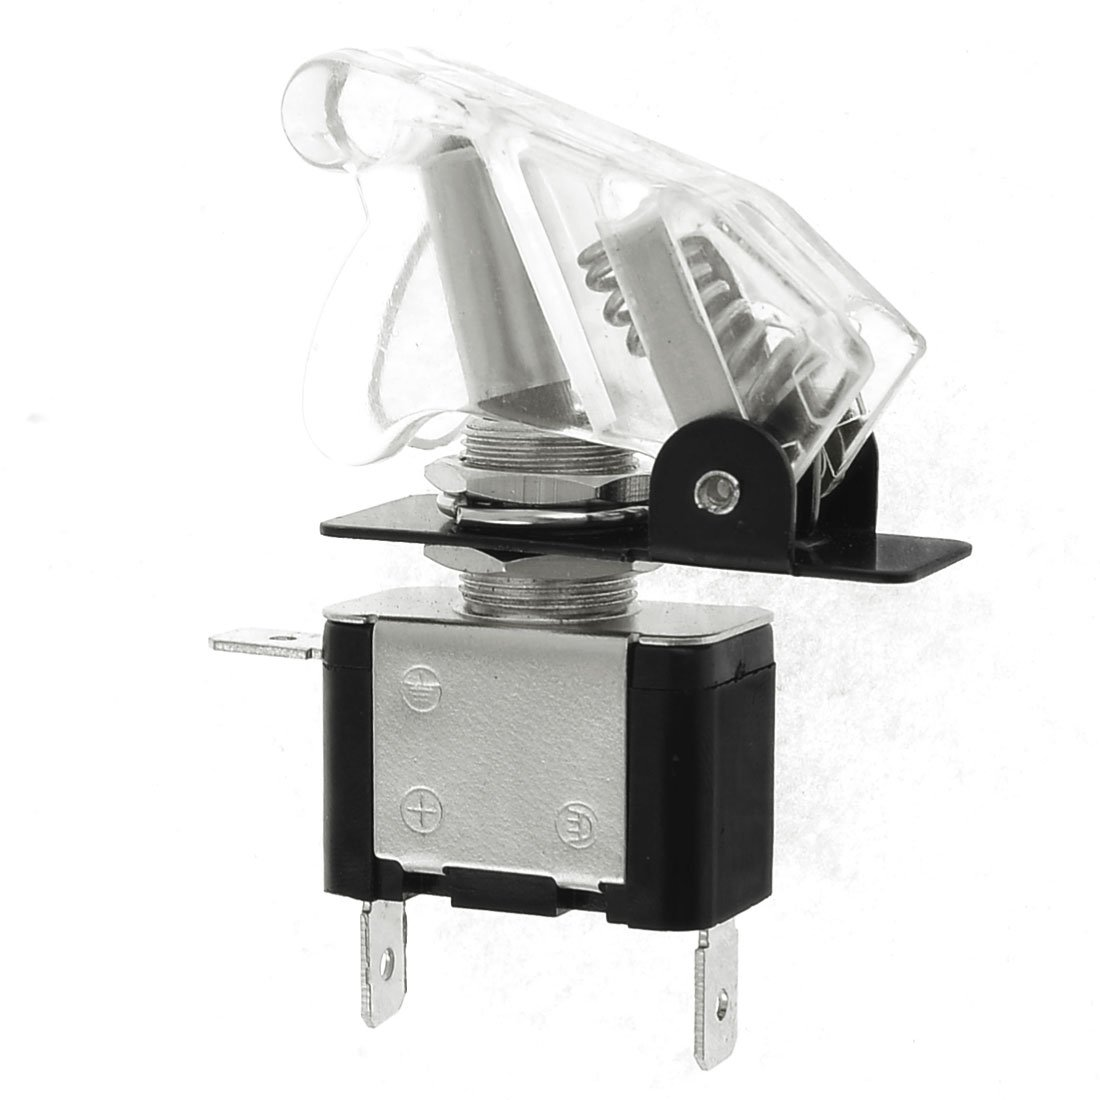 uxcell Clear LED Illuminated SPST Racing Car Toggle ON/OFF Switch Rocker 20A a13090400ux0300